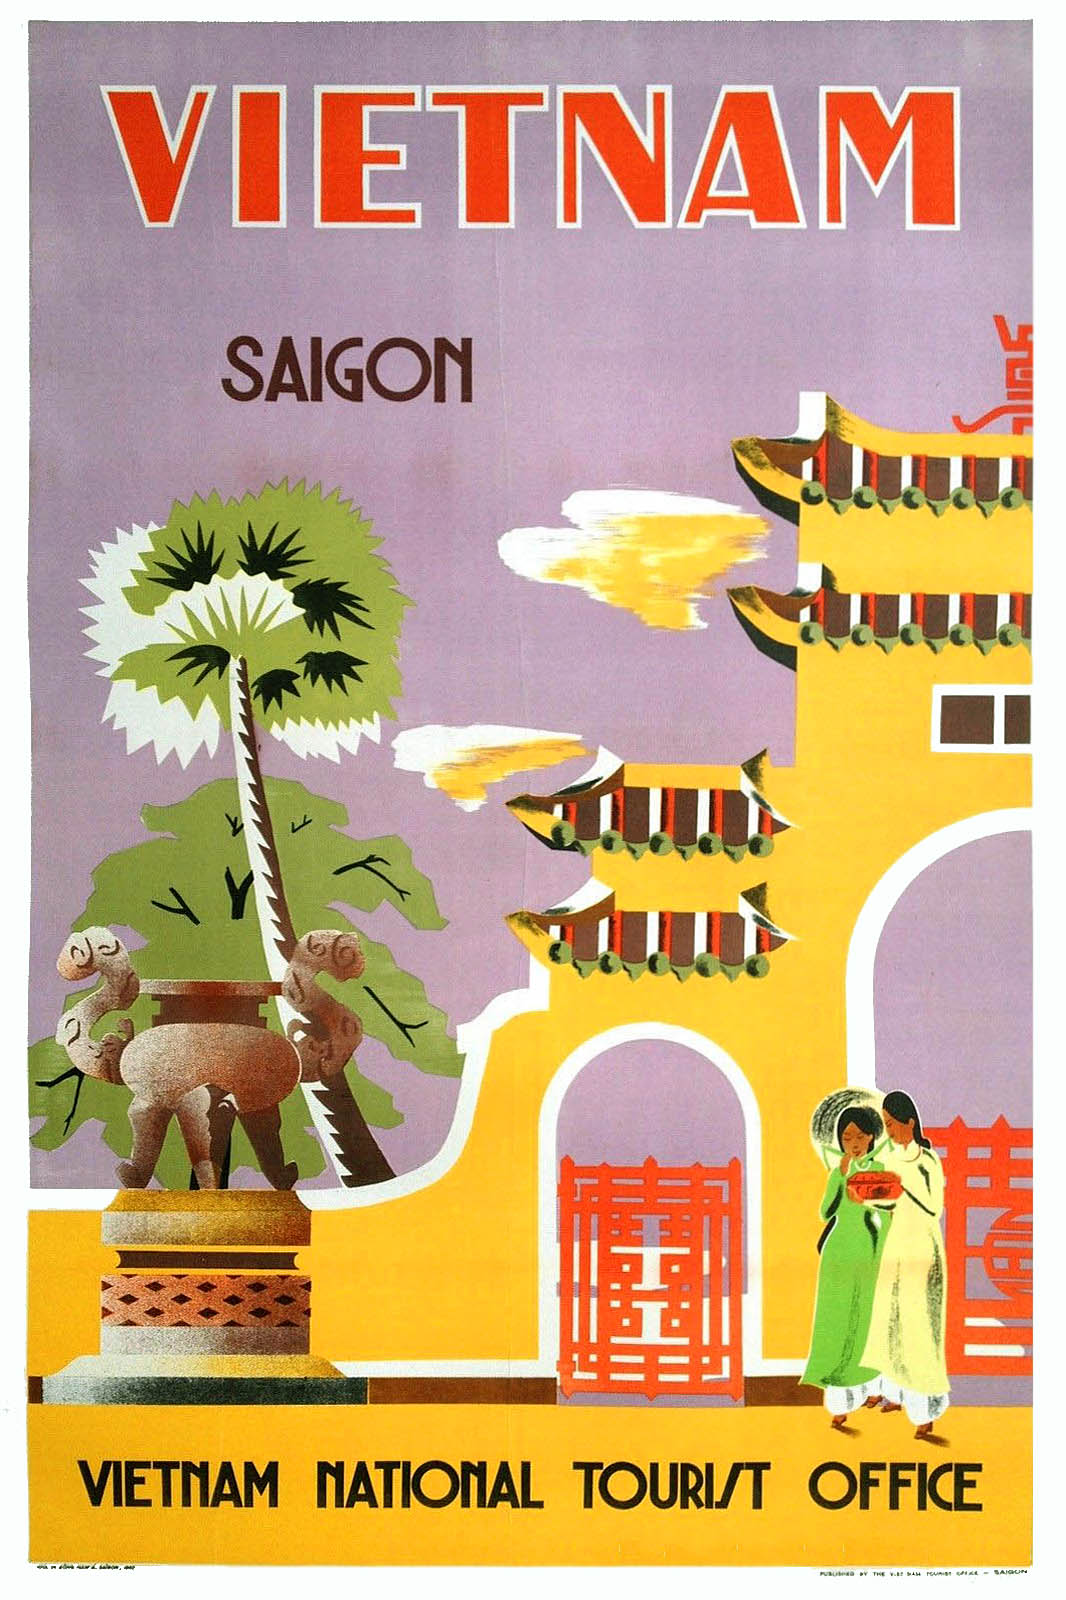 rare and beautiful vintage vietnamese tourism posters from